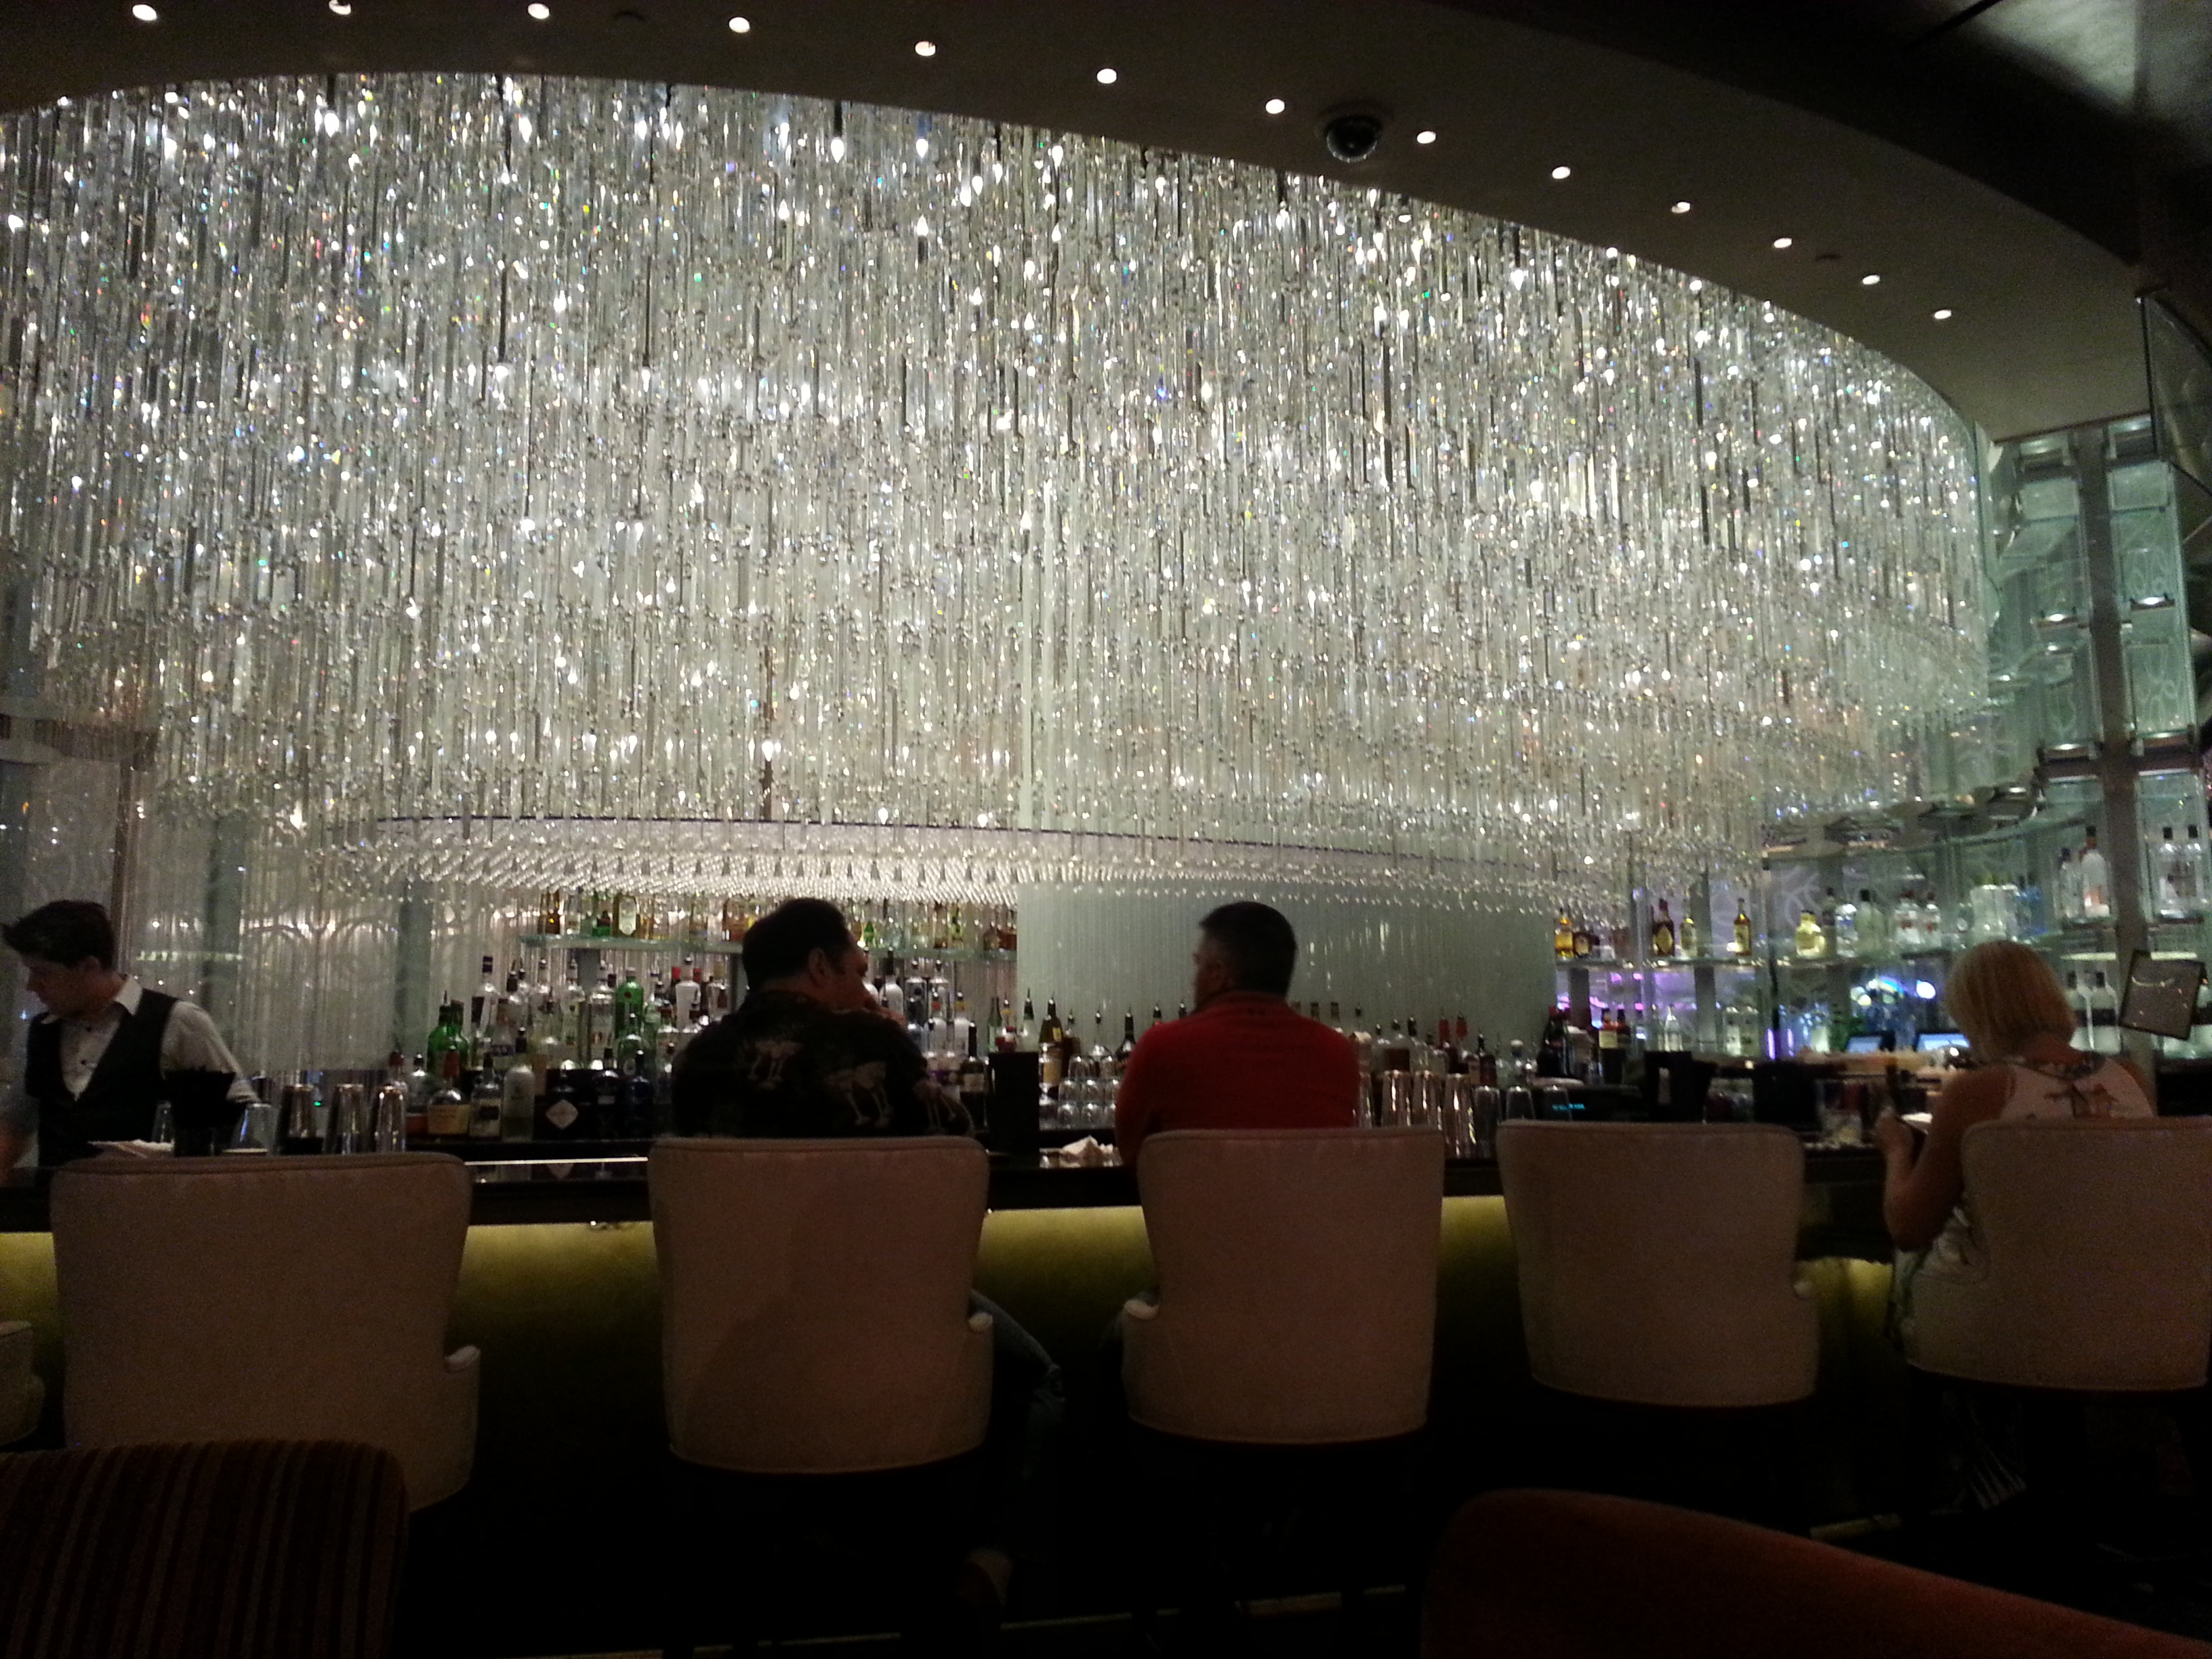 The chandelier bar lounge cosmopolitan las vegas top picks aloadofball Gallery